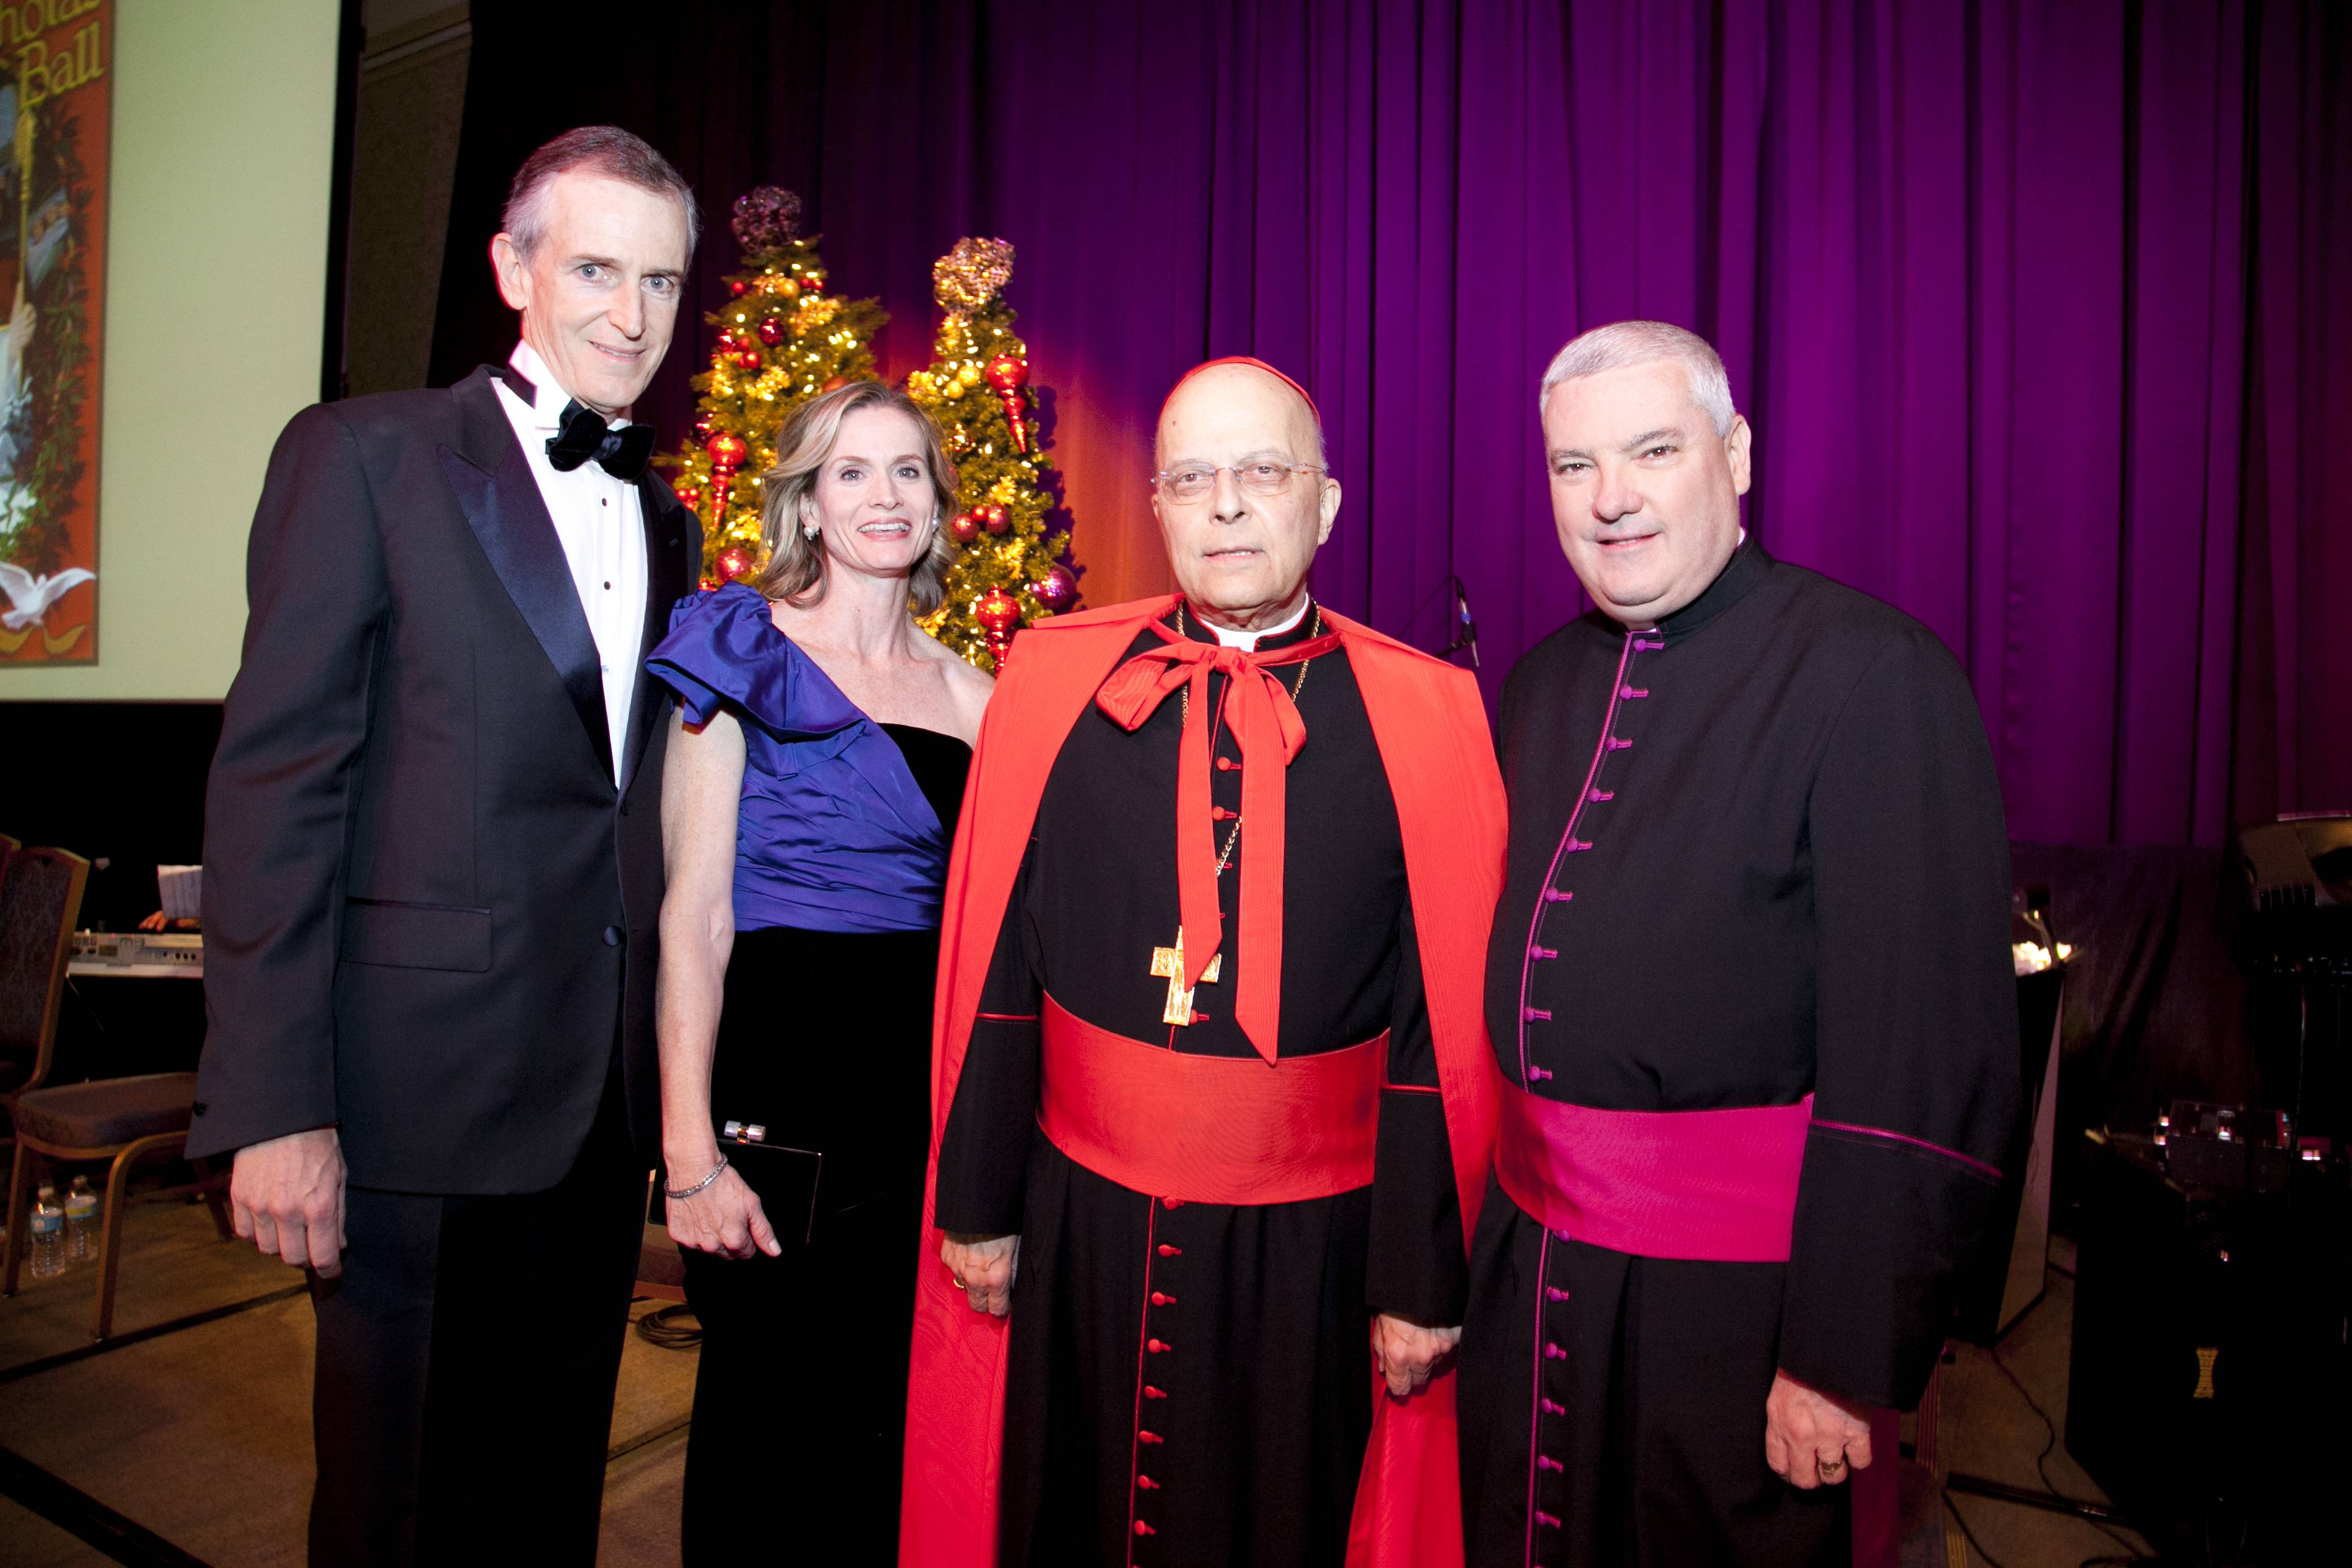 Jim and Molly Perry, Chaircouple of the 23rd annual Spirit of Saint Nicholas Ball; Francis Cardinal George O.M.I.; Msgr. Michael M. Boland, president and CEO of Catholic Charities all enjoy the evening at the 2012 Spirit of Saint Nicholas Ball on Friday, Dec. 7 at the Hilton Chicago.